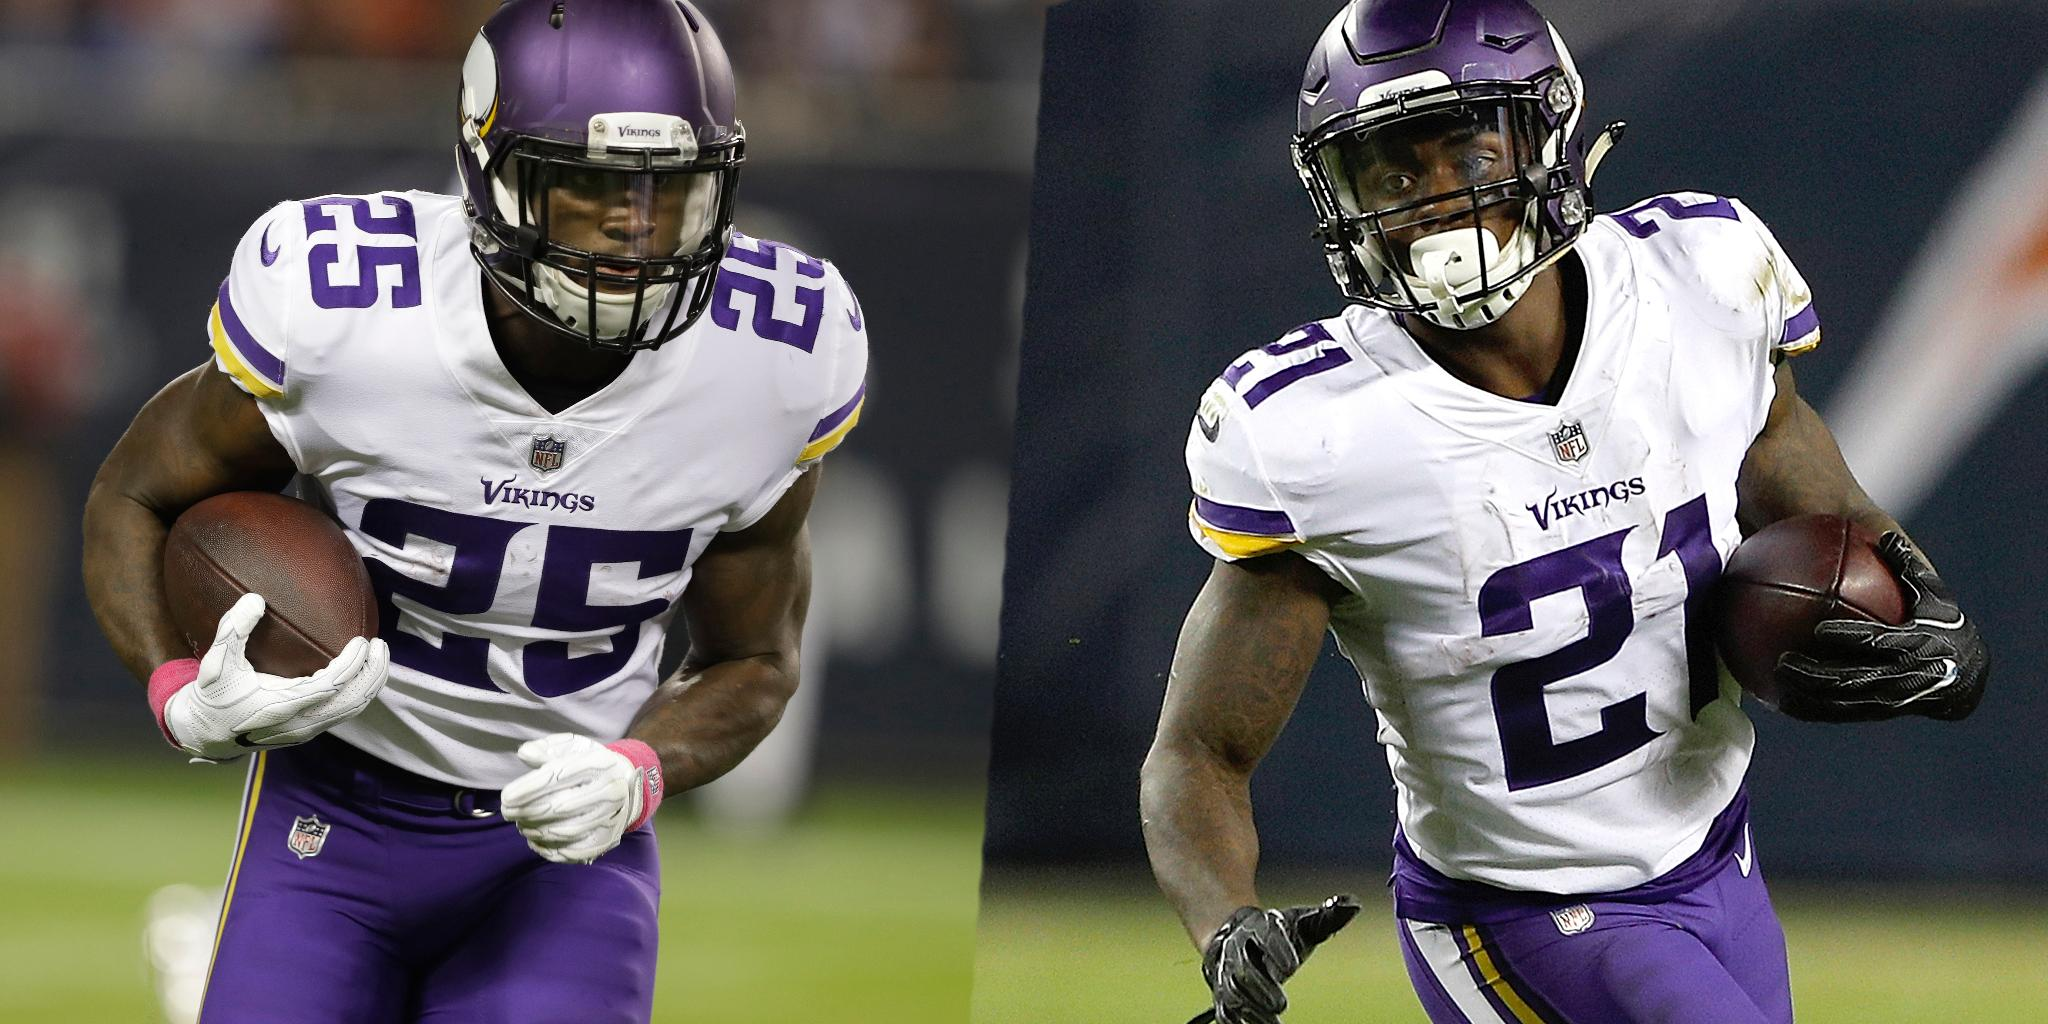 How will this backfield divide carries?  @NFLfantasy GMs might want to know: https://t.co/9J74SBnat4 https://t.co/tQMXTR6UNX